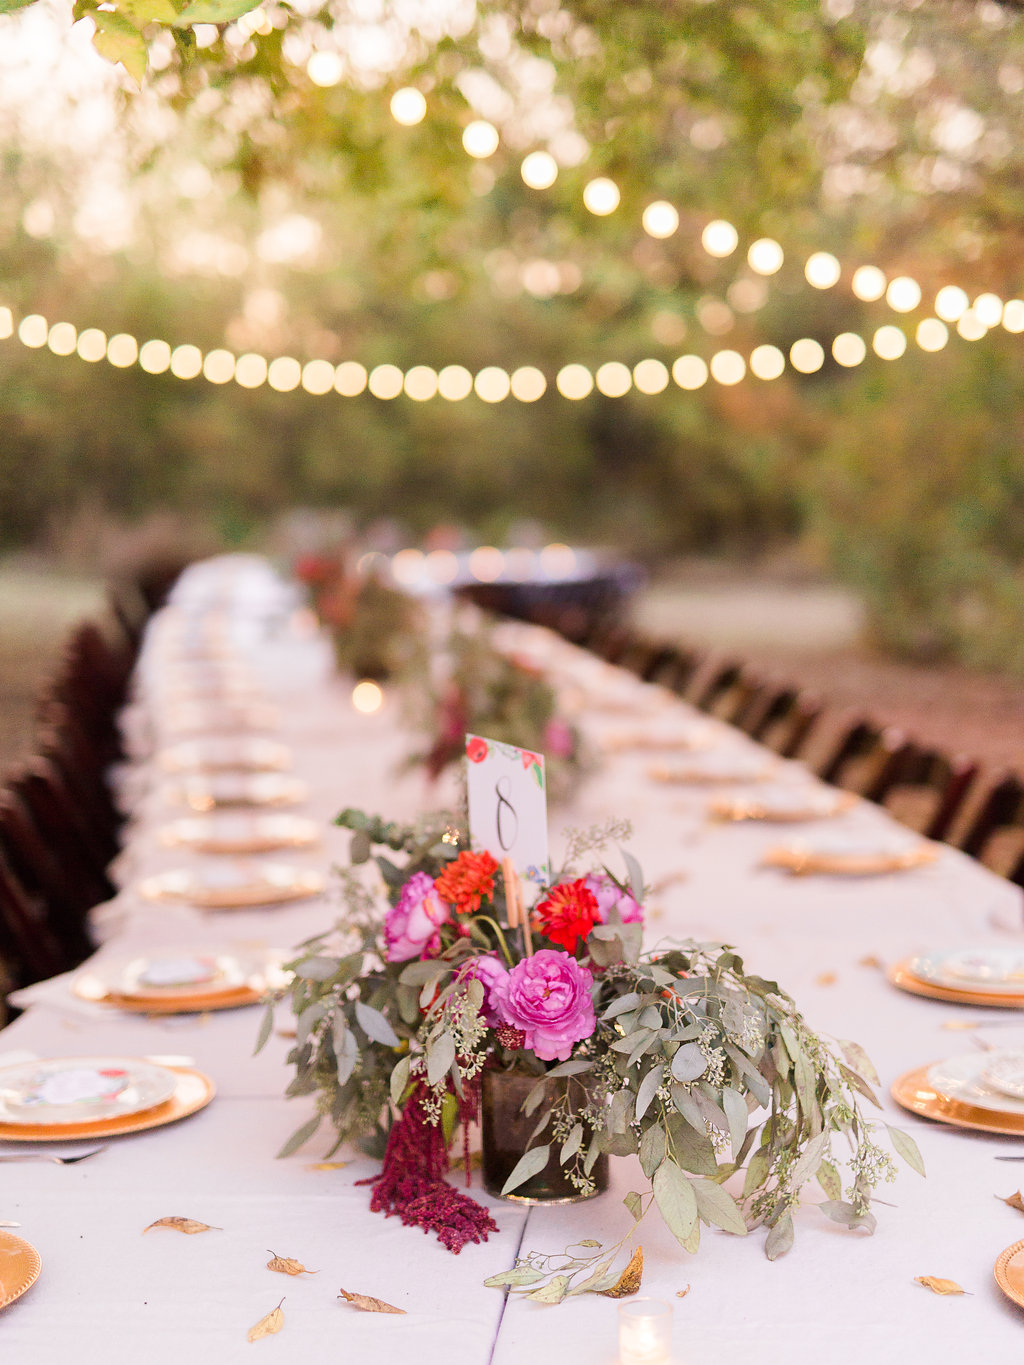 Centerpieces used as table number holders